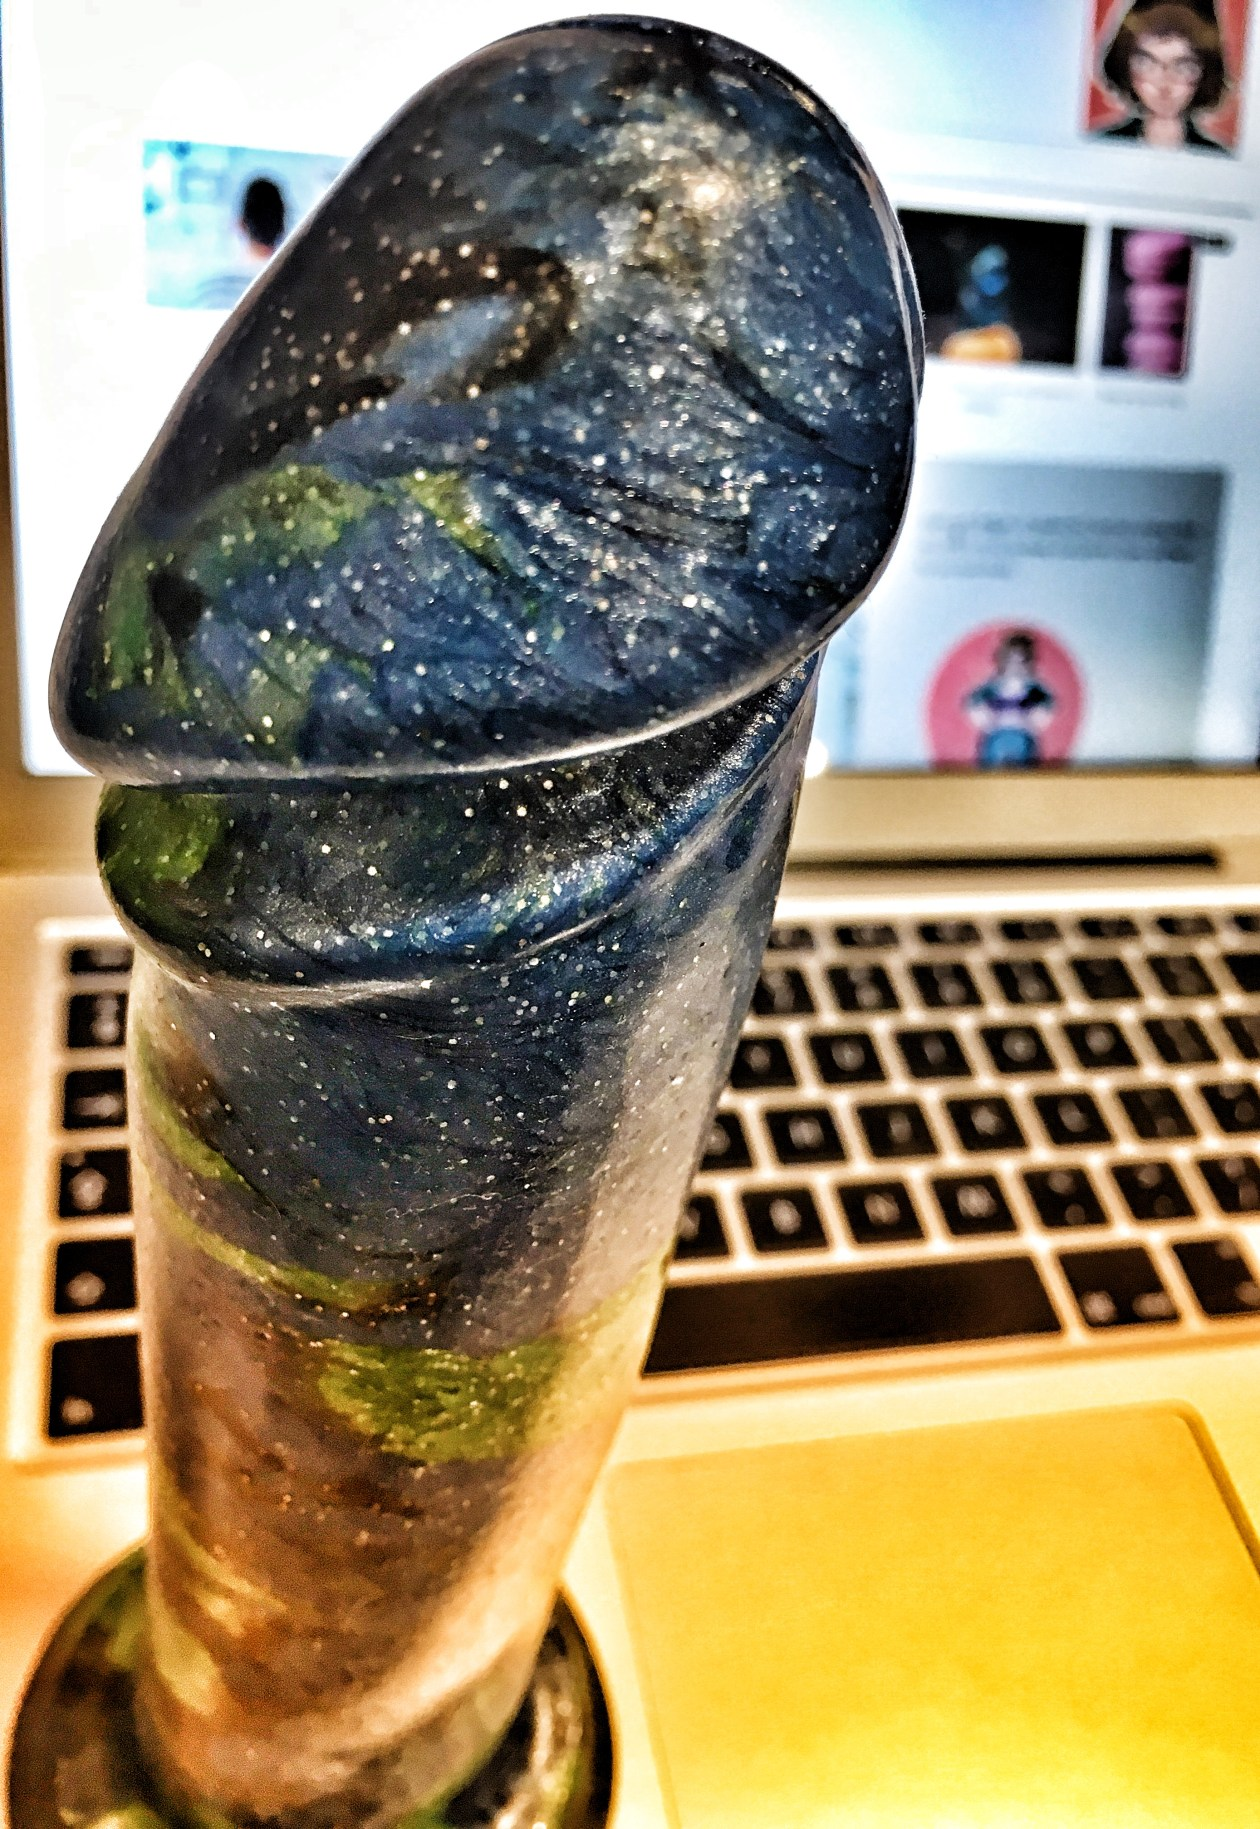 Blue-green glittery dildo suction-cupped to a laptop. Photo.